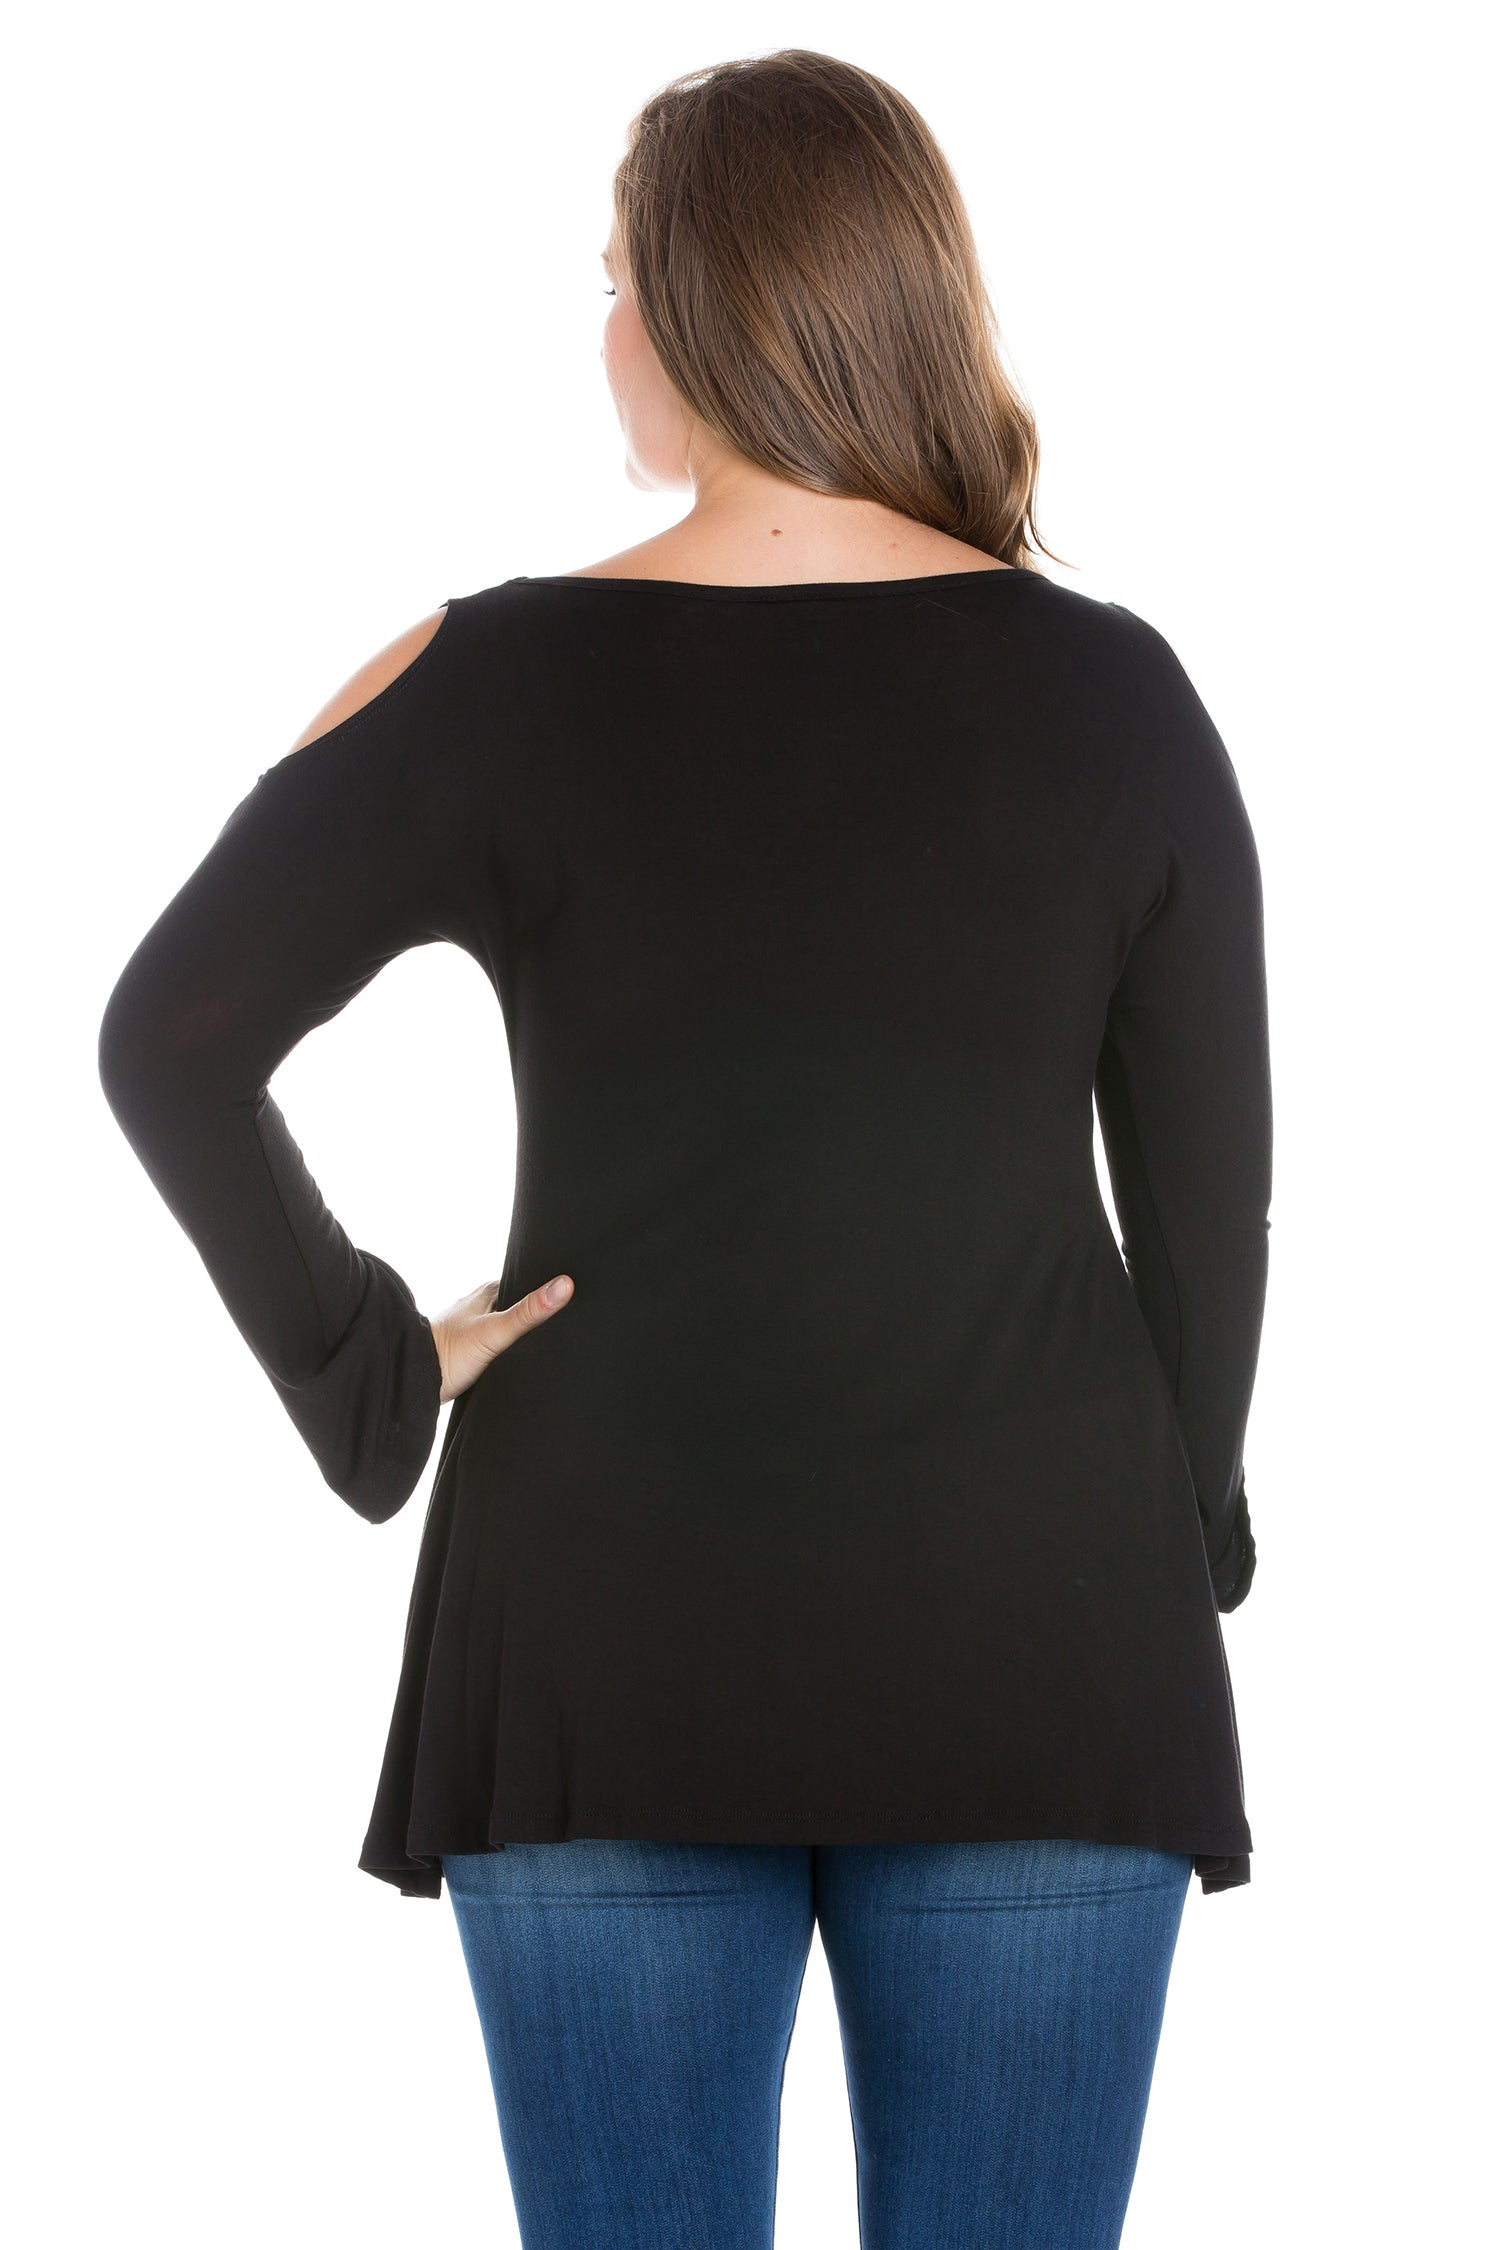 24seven Comfort Apparel Long Sleeve Plus Size Criss Cross Cold Shoulder Top-TOPS-24Seven Comfort Apparel-BLACK-1X-24/7 Comfort Apparel